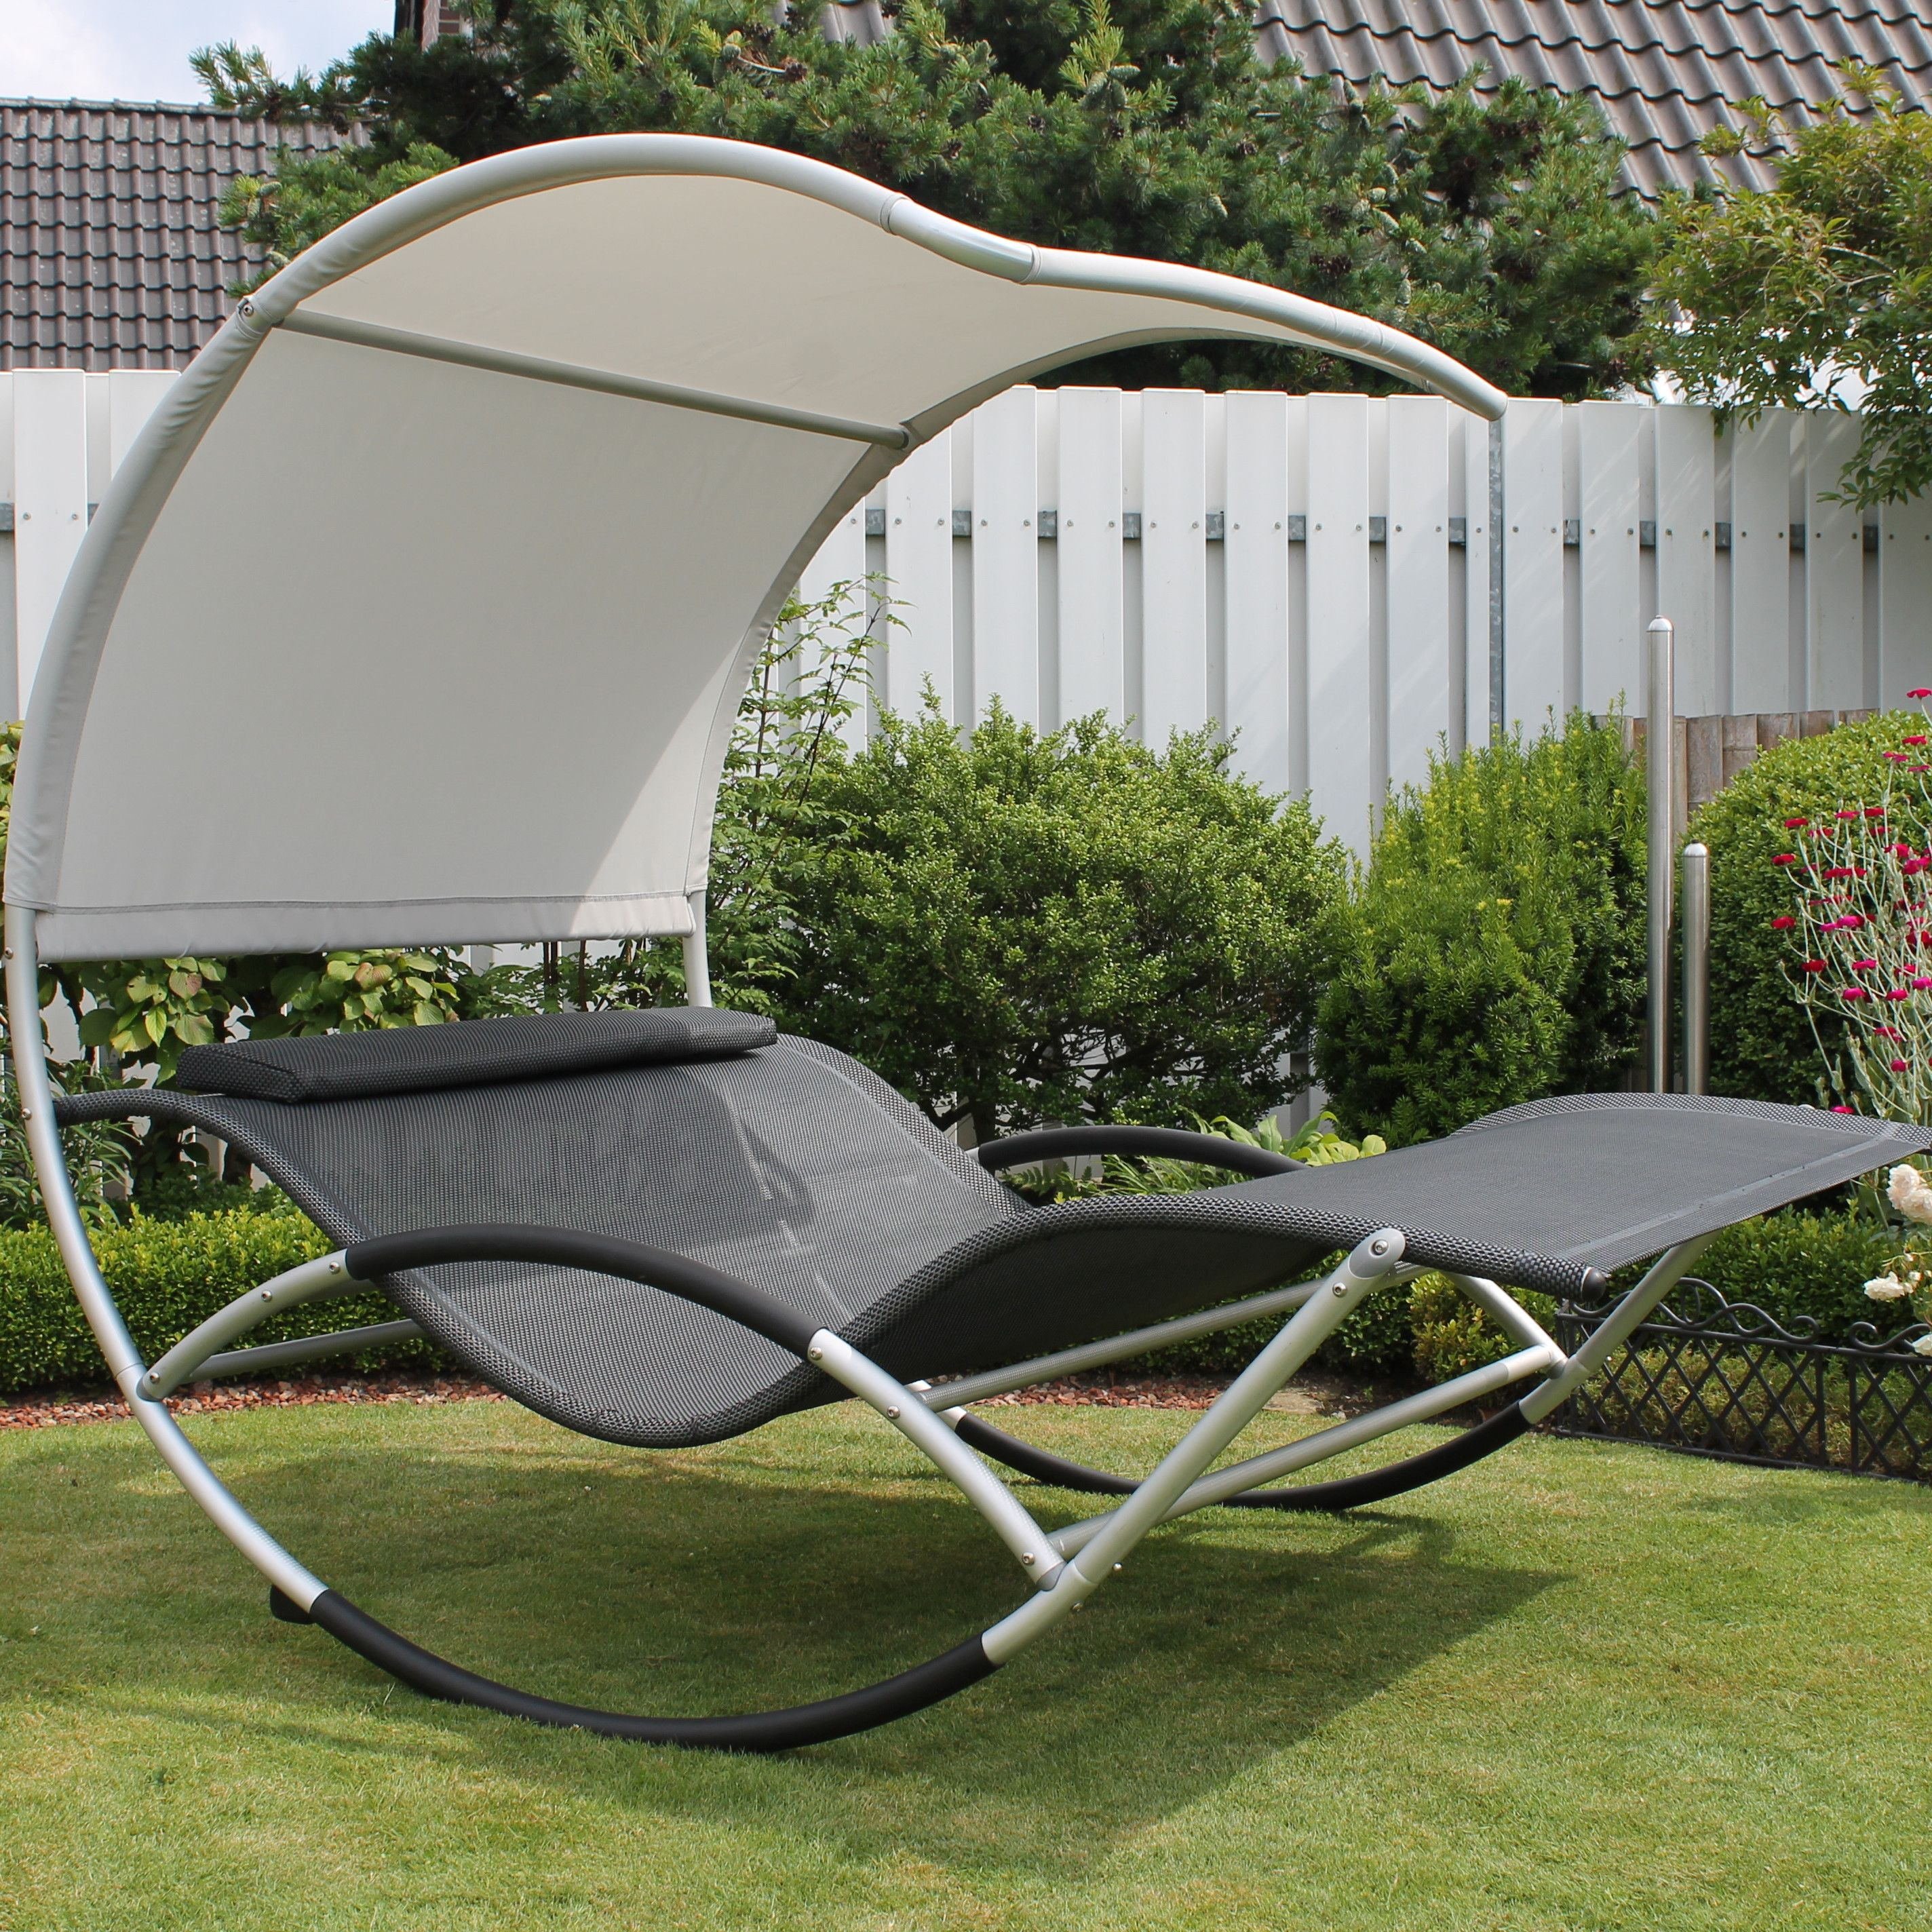 Garten Lounge Flo Leco Jumbo Double Sun Lounger With Cushion House Deco